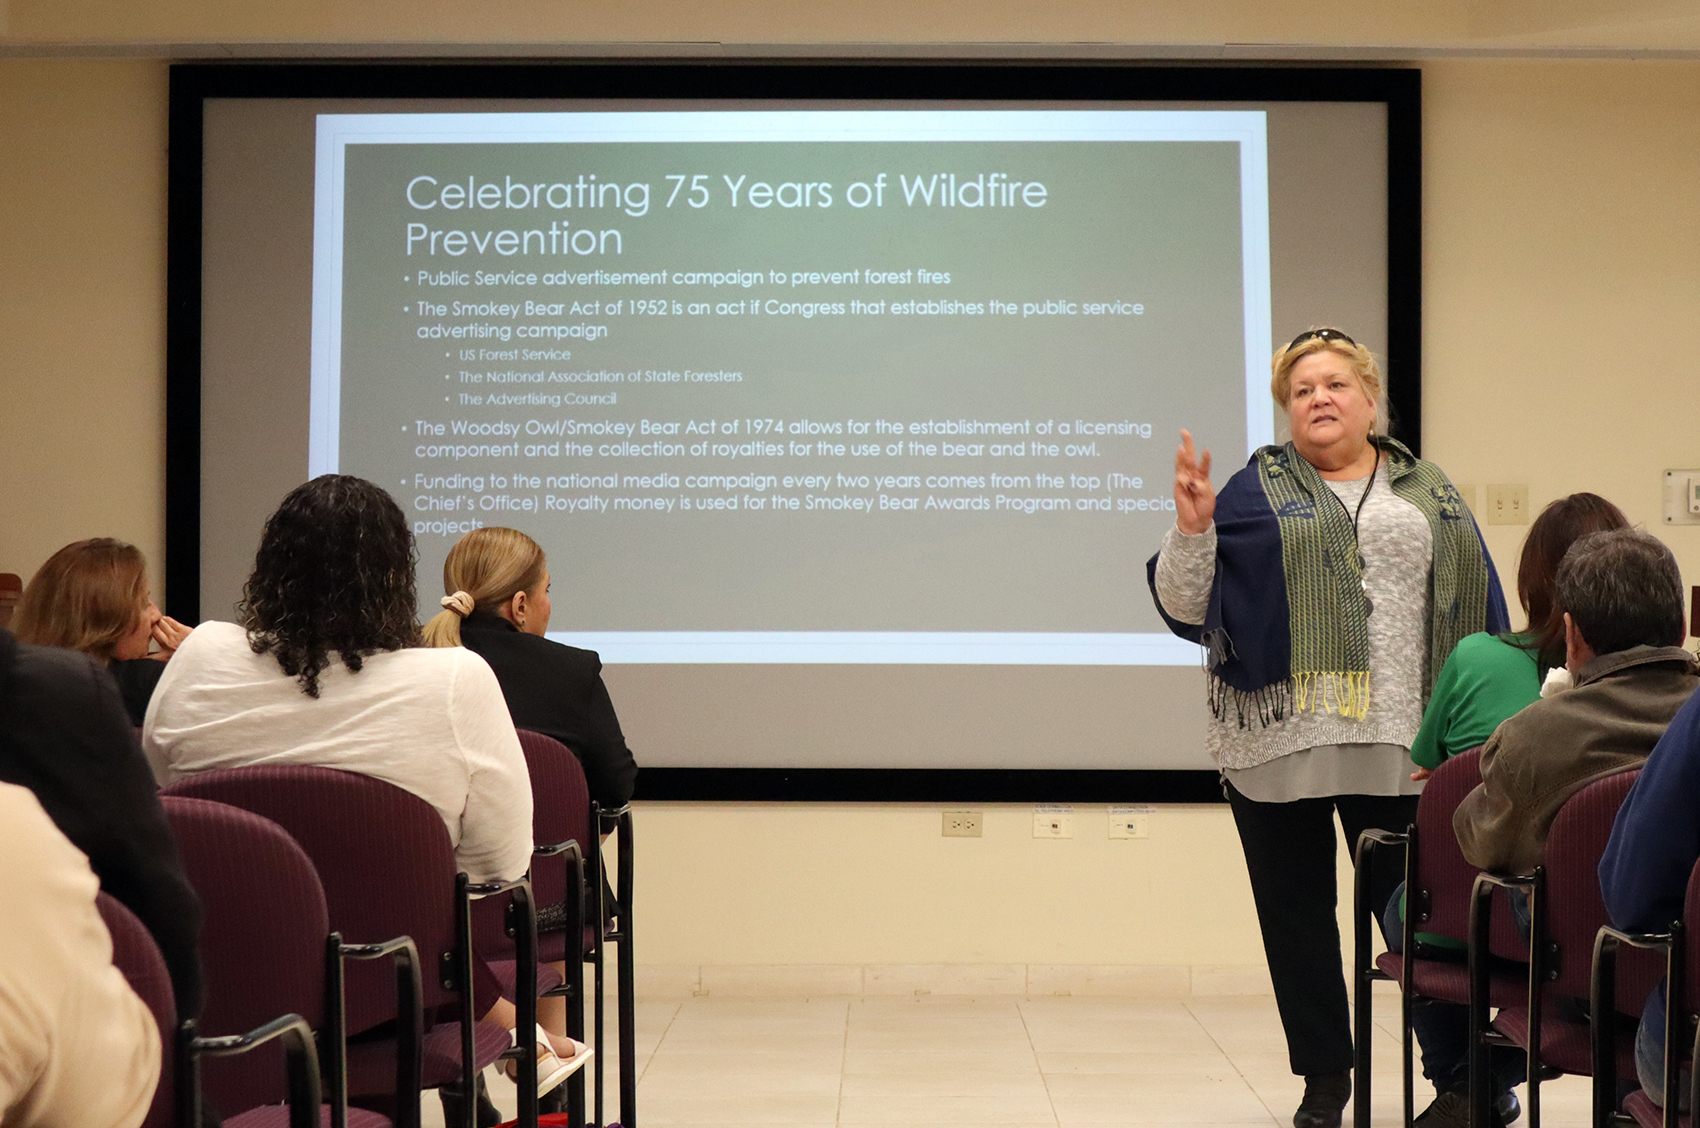 Iris Velez stands in the front of a conference room; behind her is a slide detailing a timeline of 75 years of wildfire history.